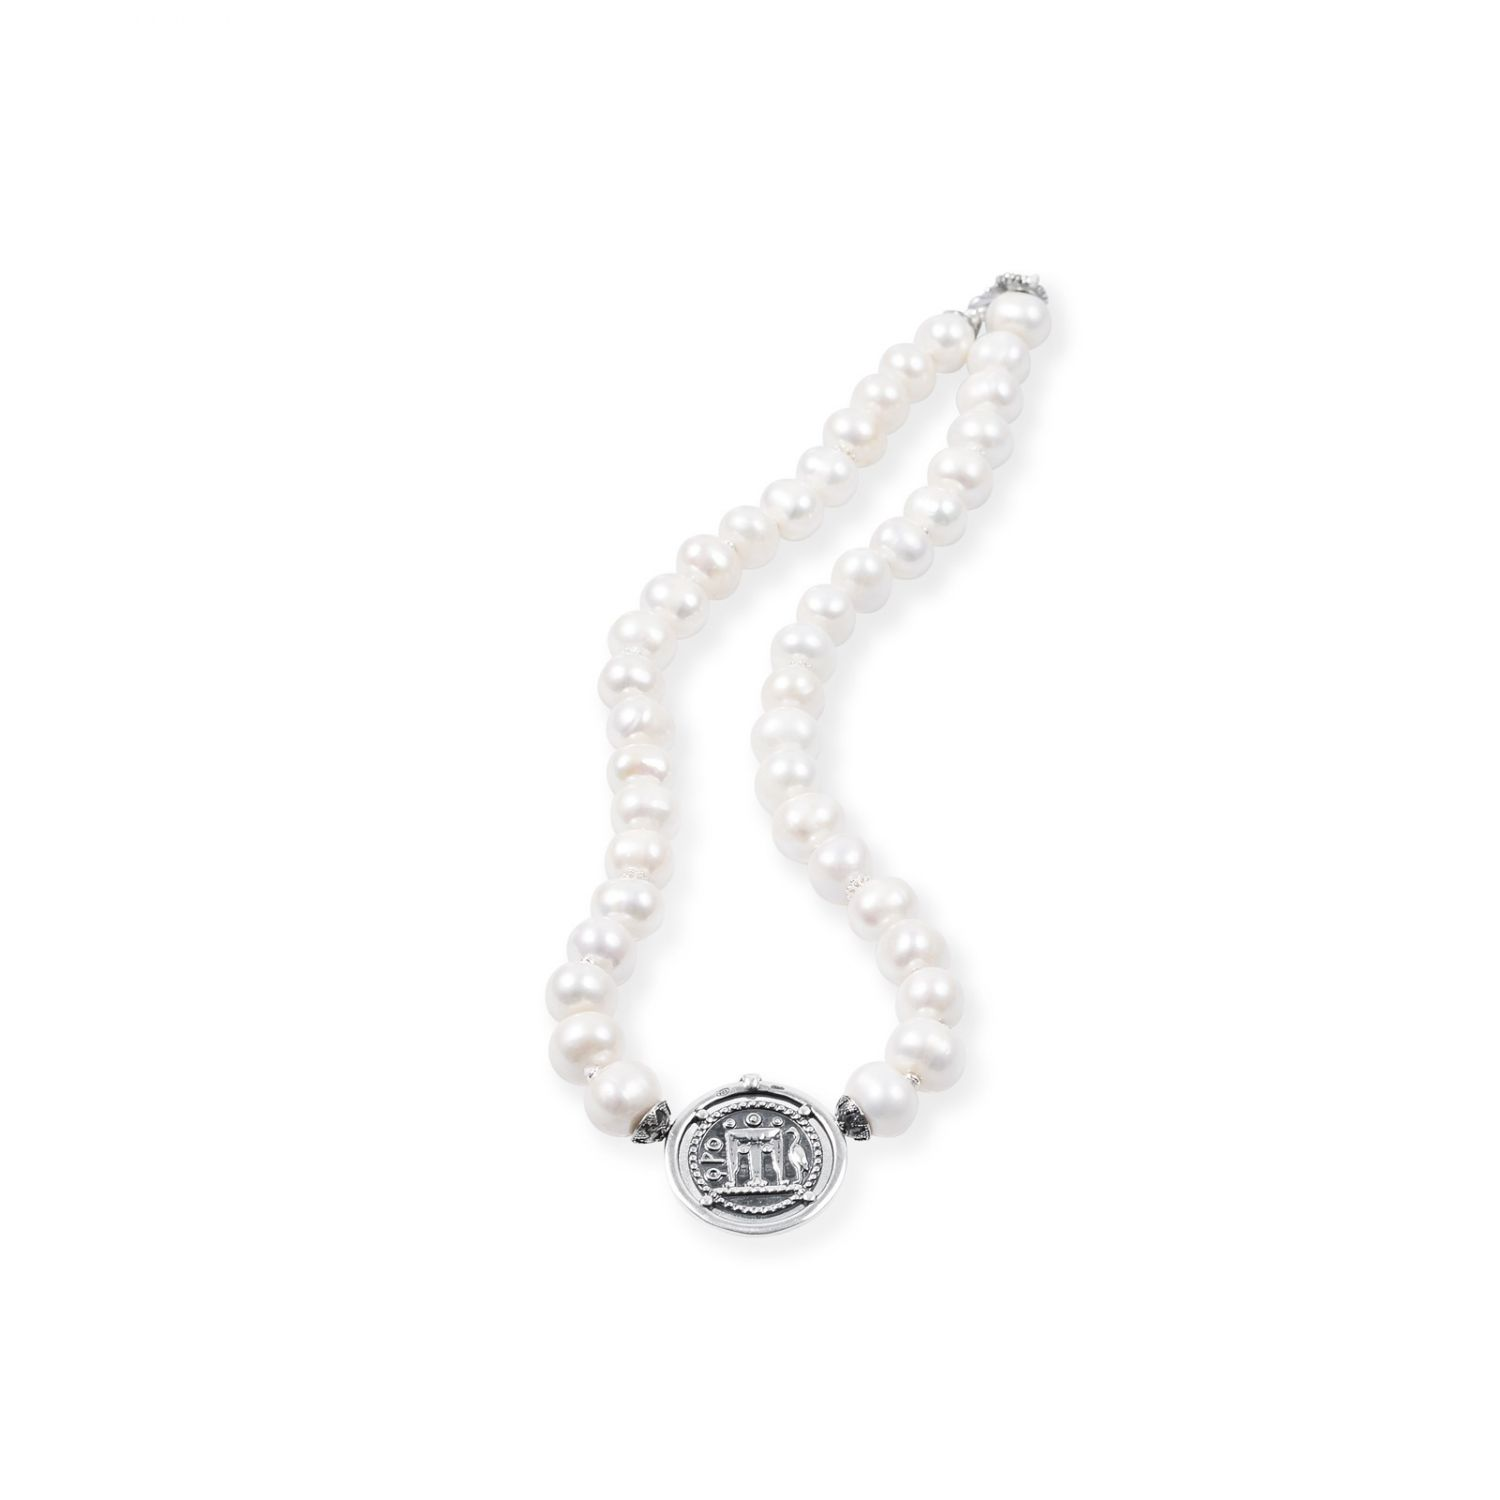 Pearls Necklace with Coin (27582)